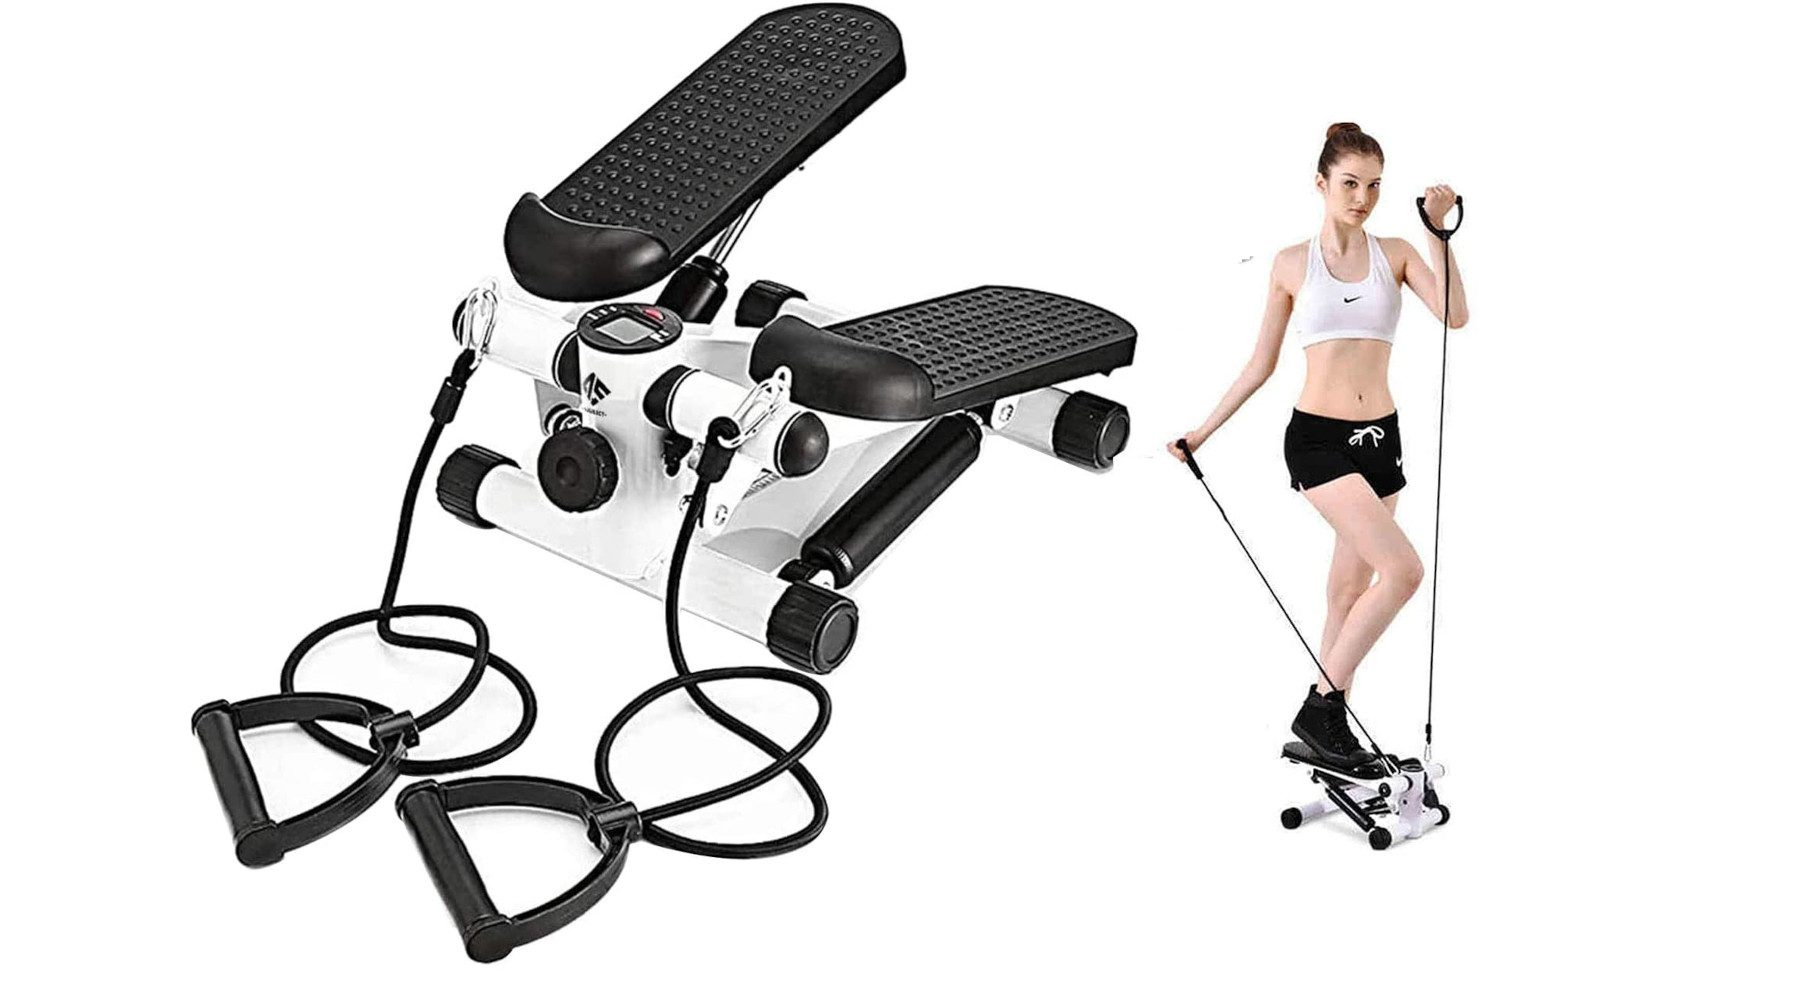 </p><h4>Auselect Exercise Stepper for $85.99 - save $54</h4><p>